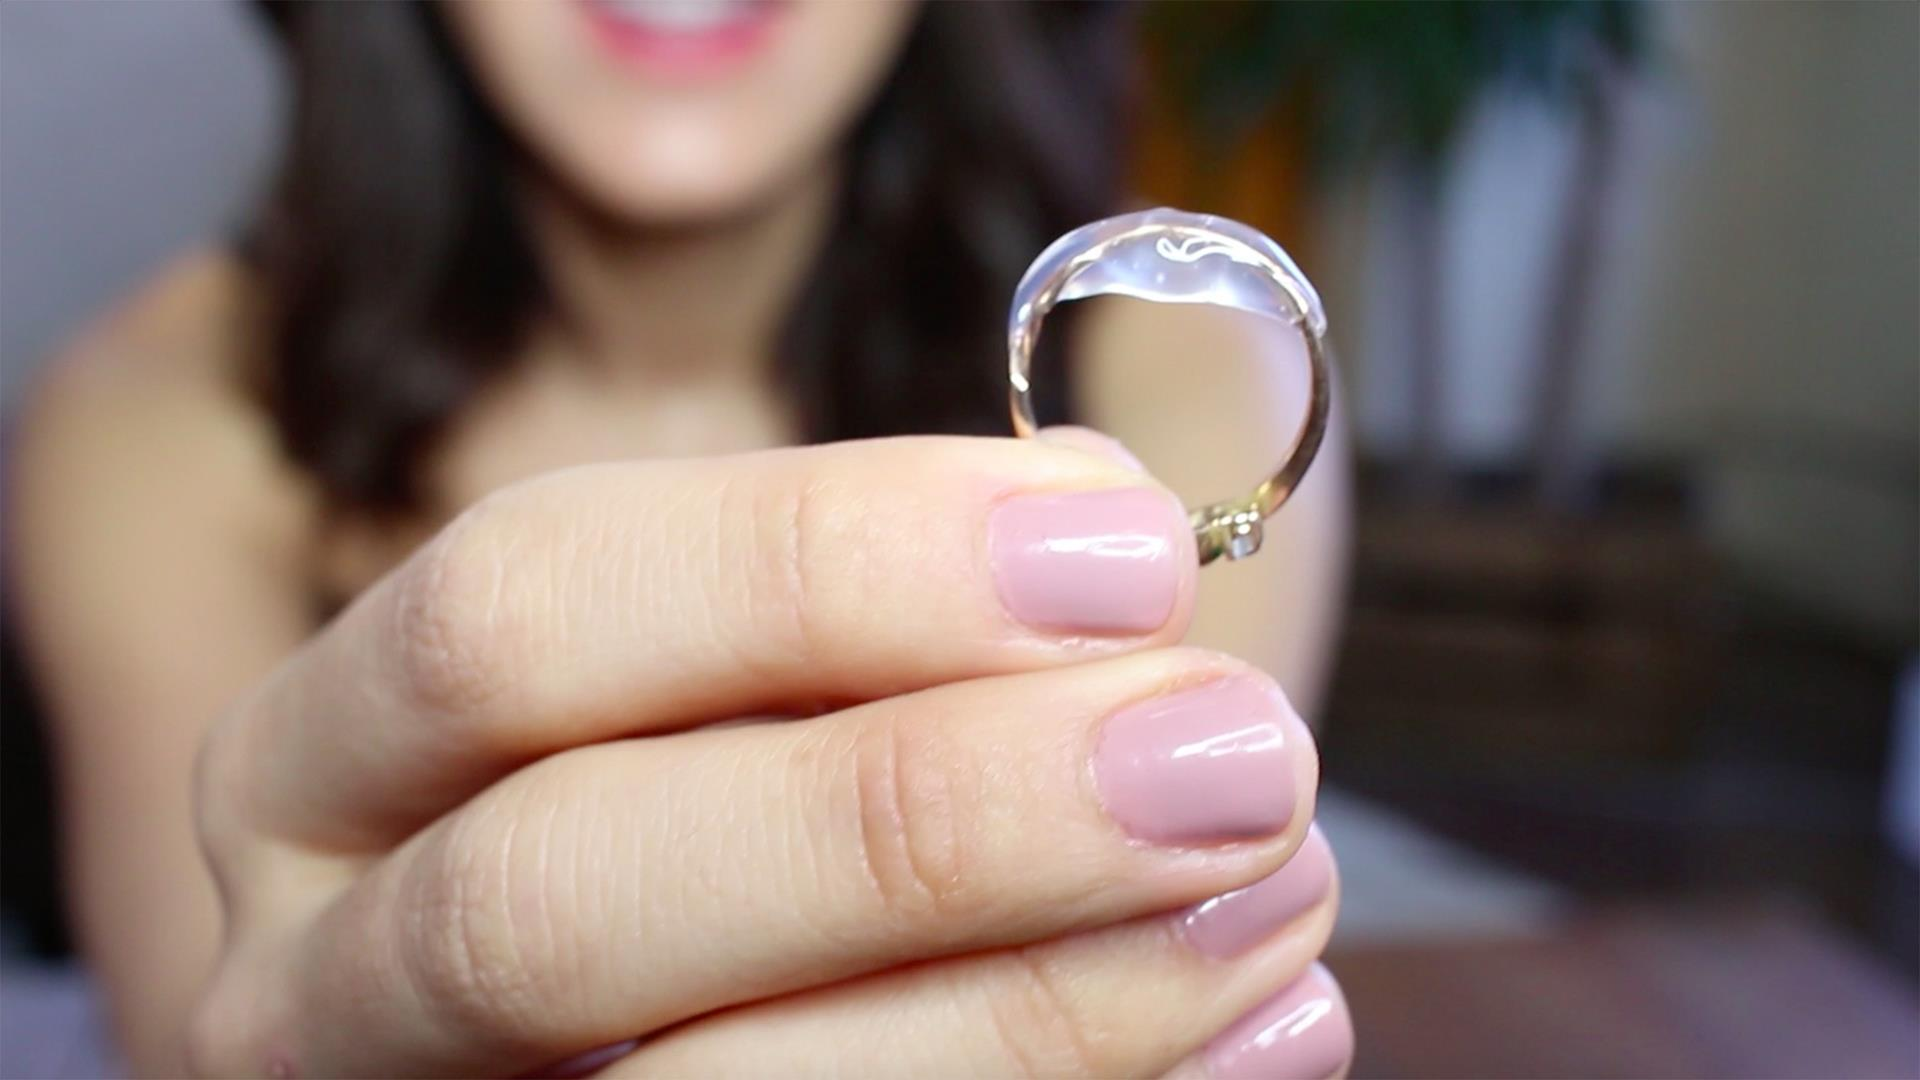 How to resize your ring in less than 1 minute